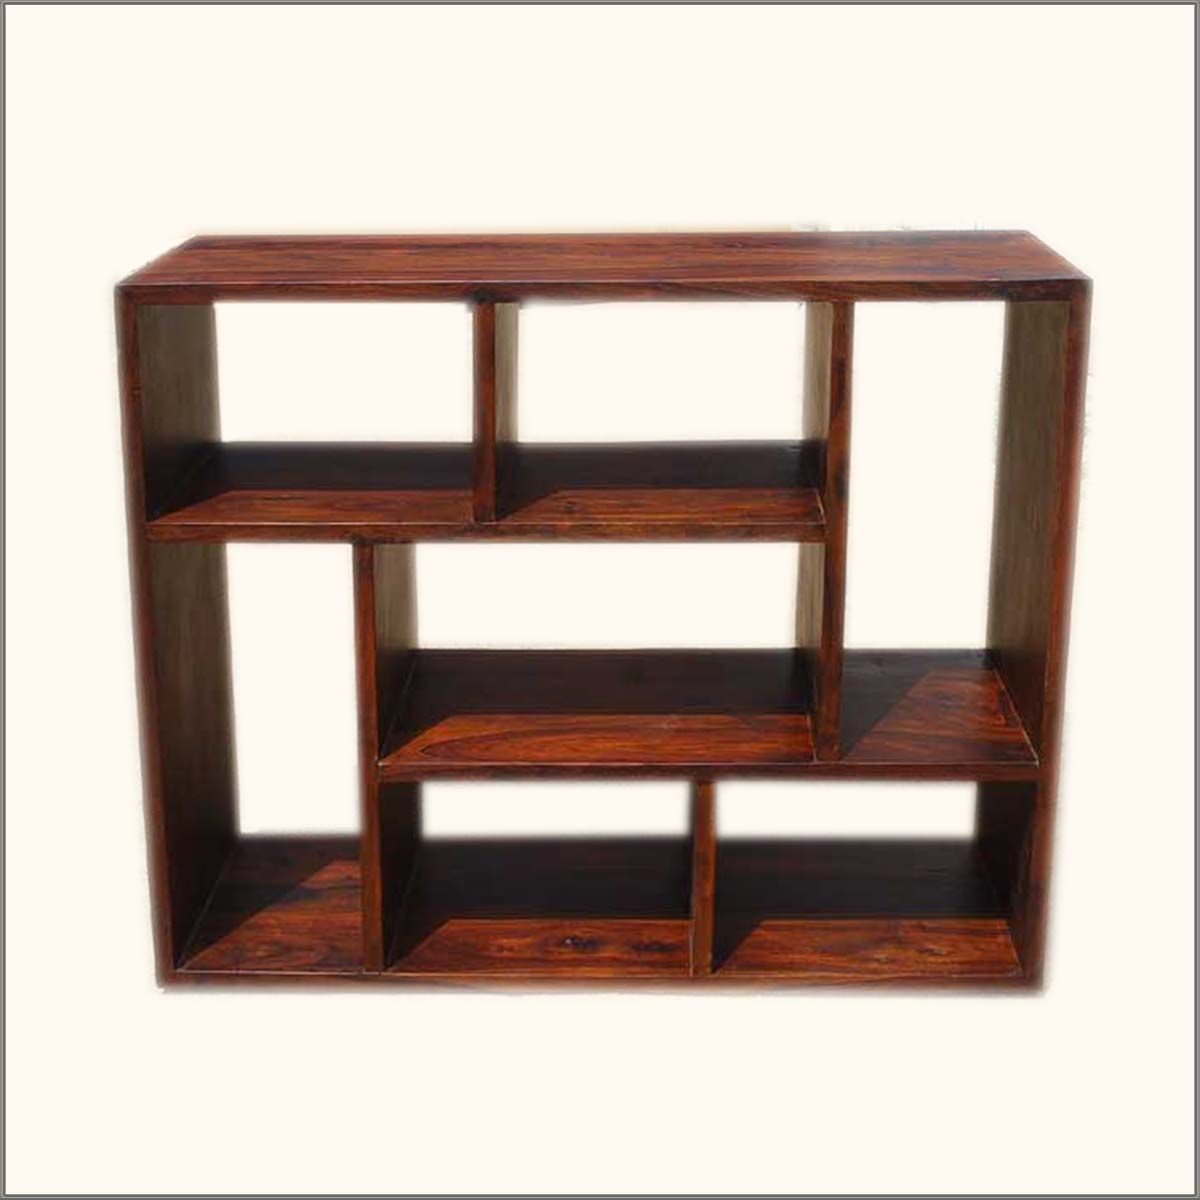 Asymmetrical Cube Bookcase Contemporary Wooden Display Cabinet